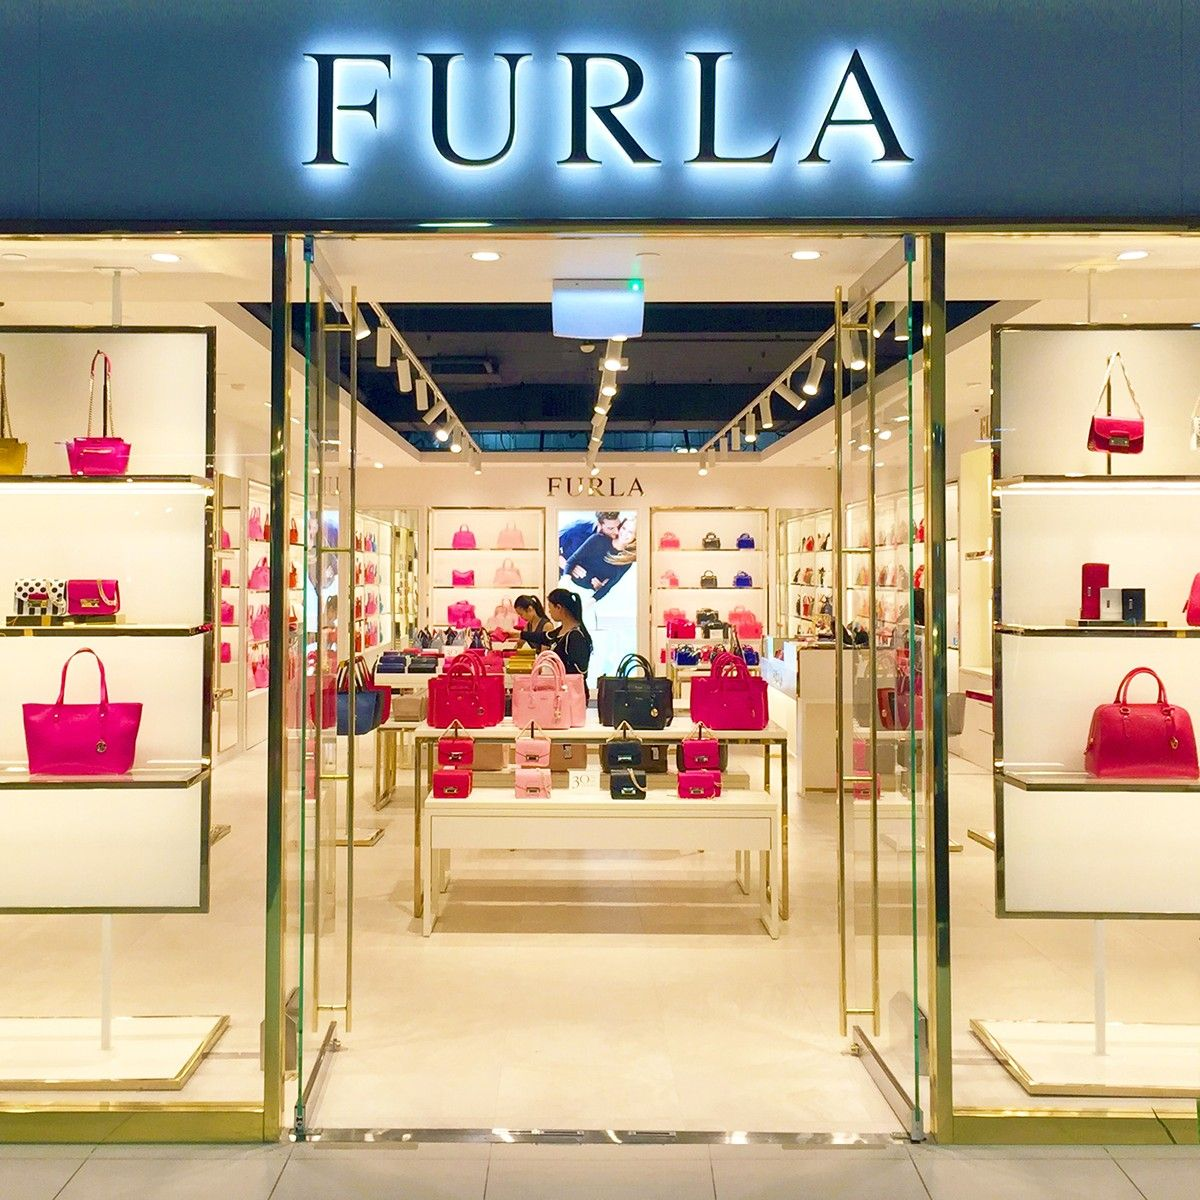 Brand new Furla store in Melbourne South Wharf DFO wonderfully lit